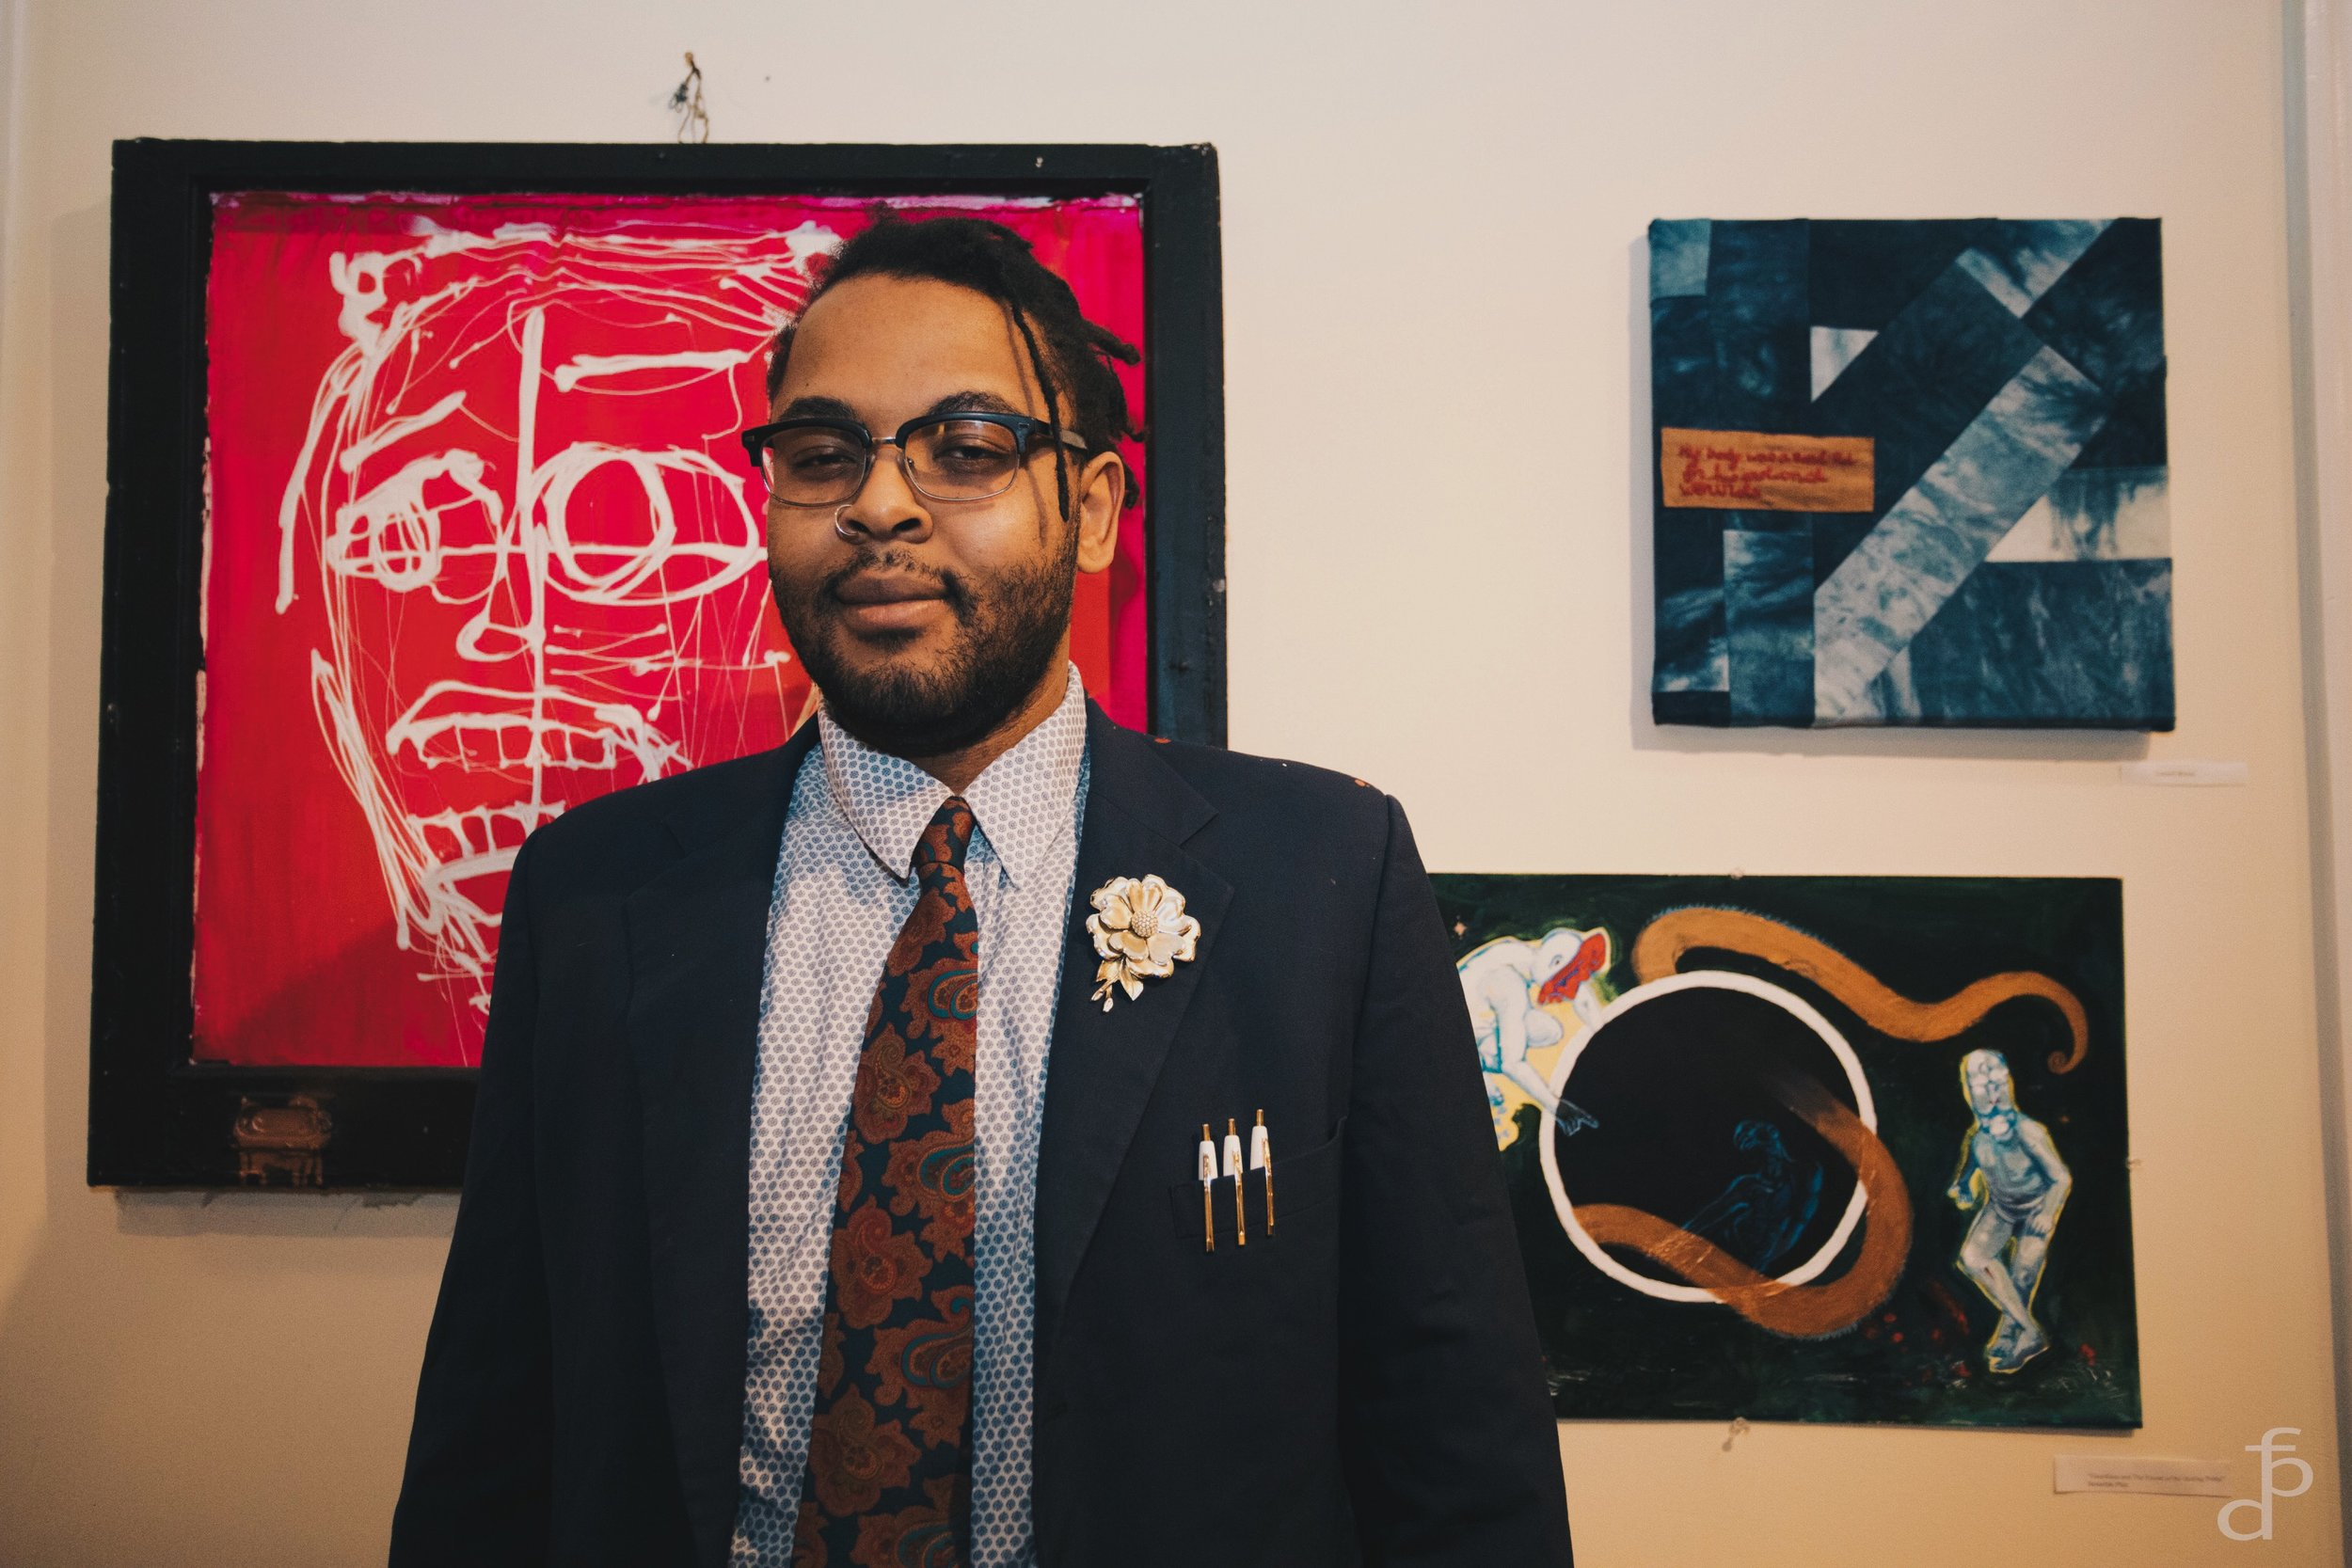 Artist William Wallace and his work (pink piece)